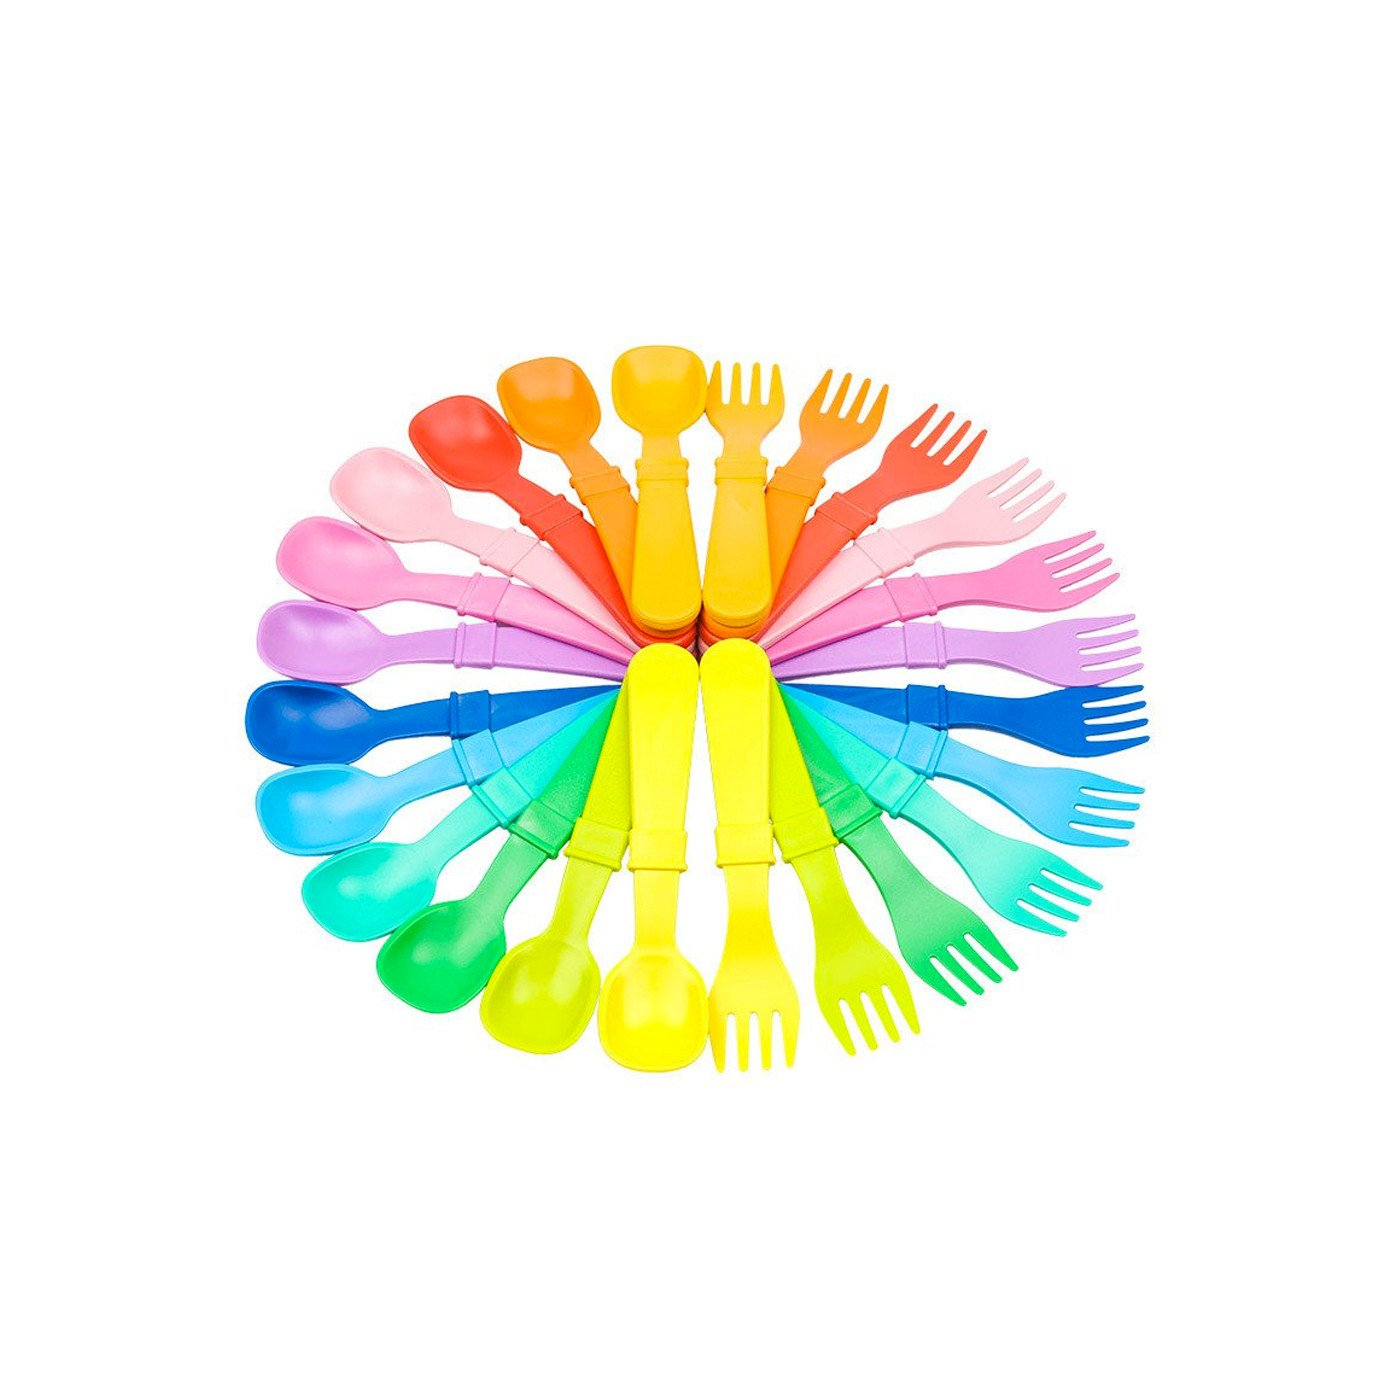 Replay 12 Piece Sets Rainbow Replay Dinnerware Utensils at Little Earth Nest Eco Shop